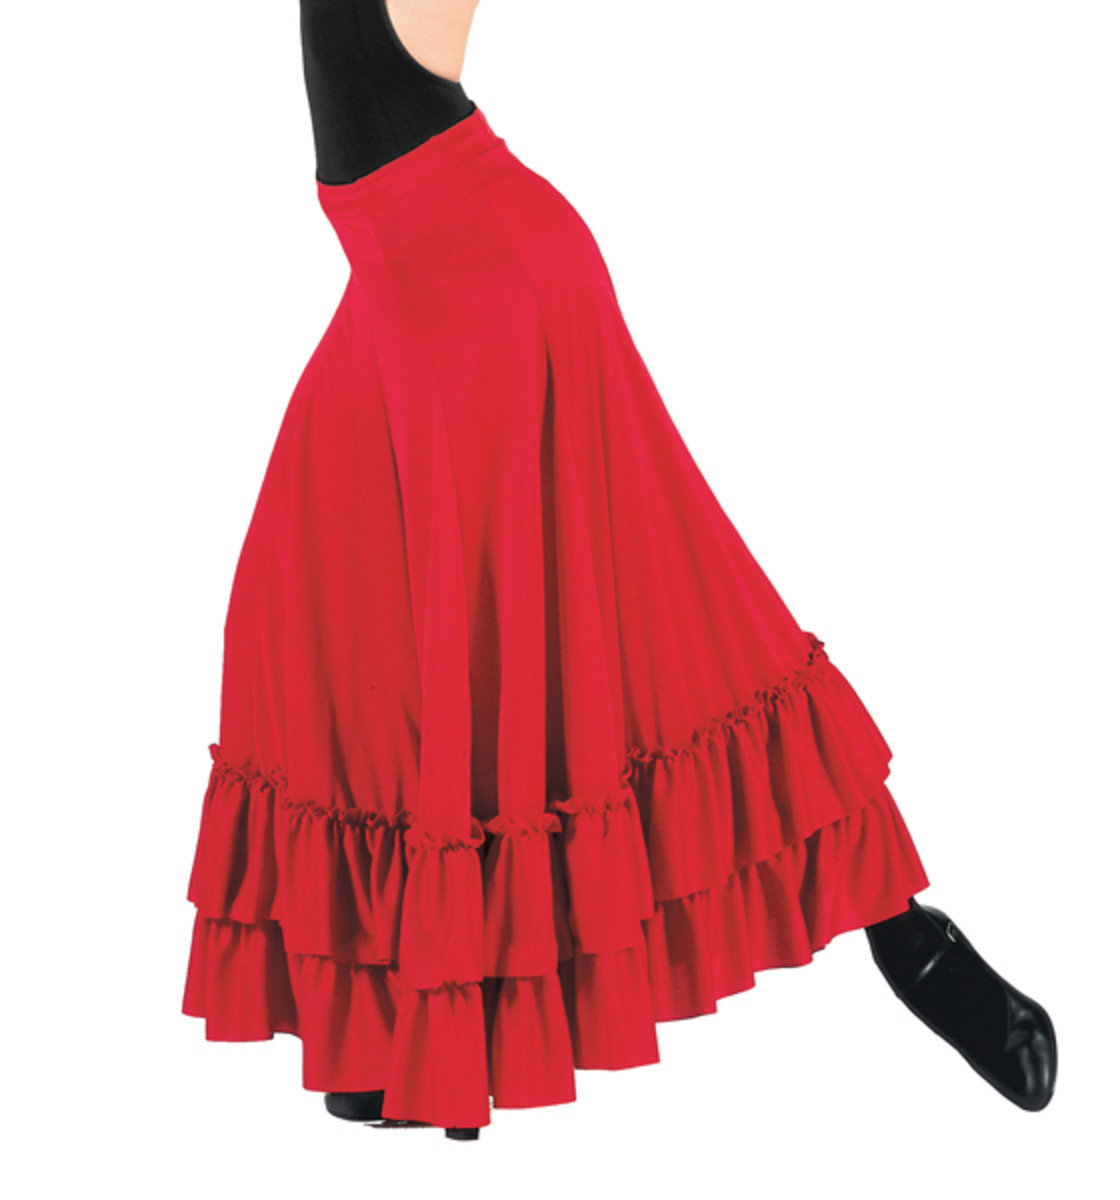 How to Make a Flamenco Skirt or Dress